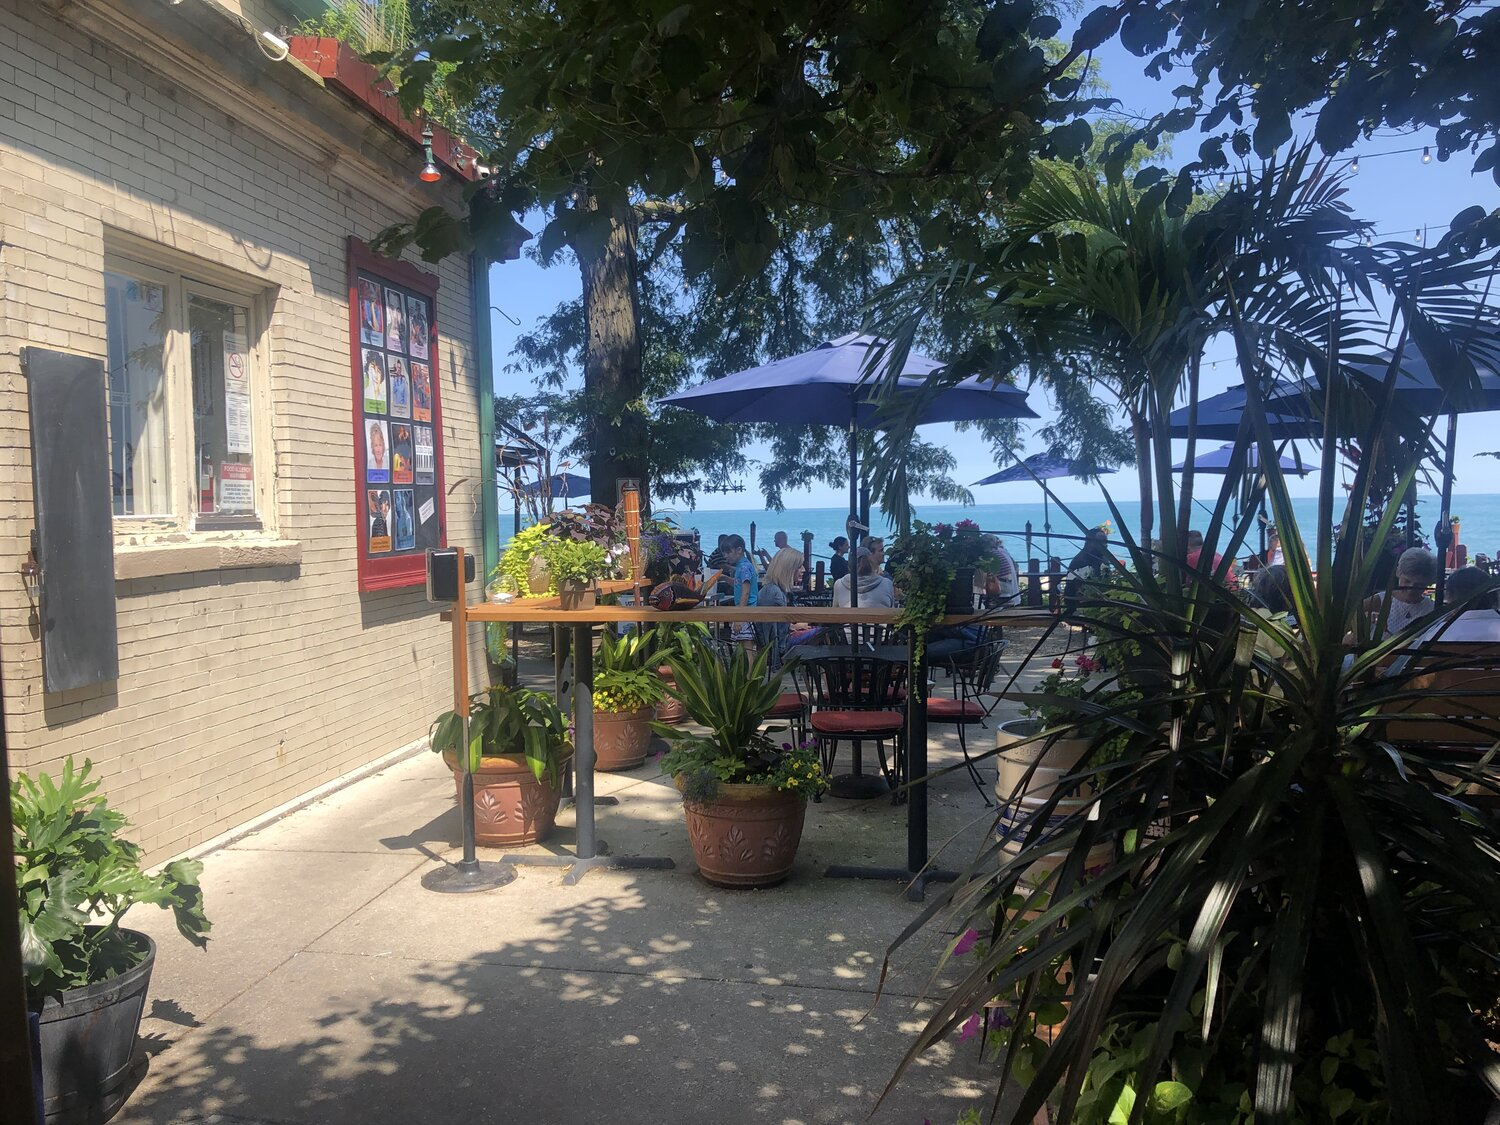 a dining patio with Lake Michigan in the background